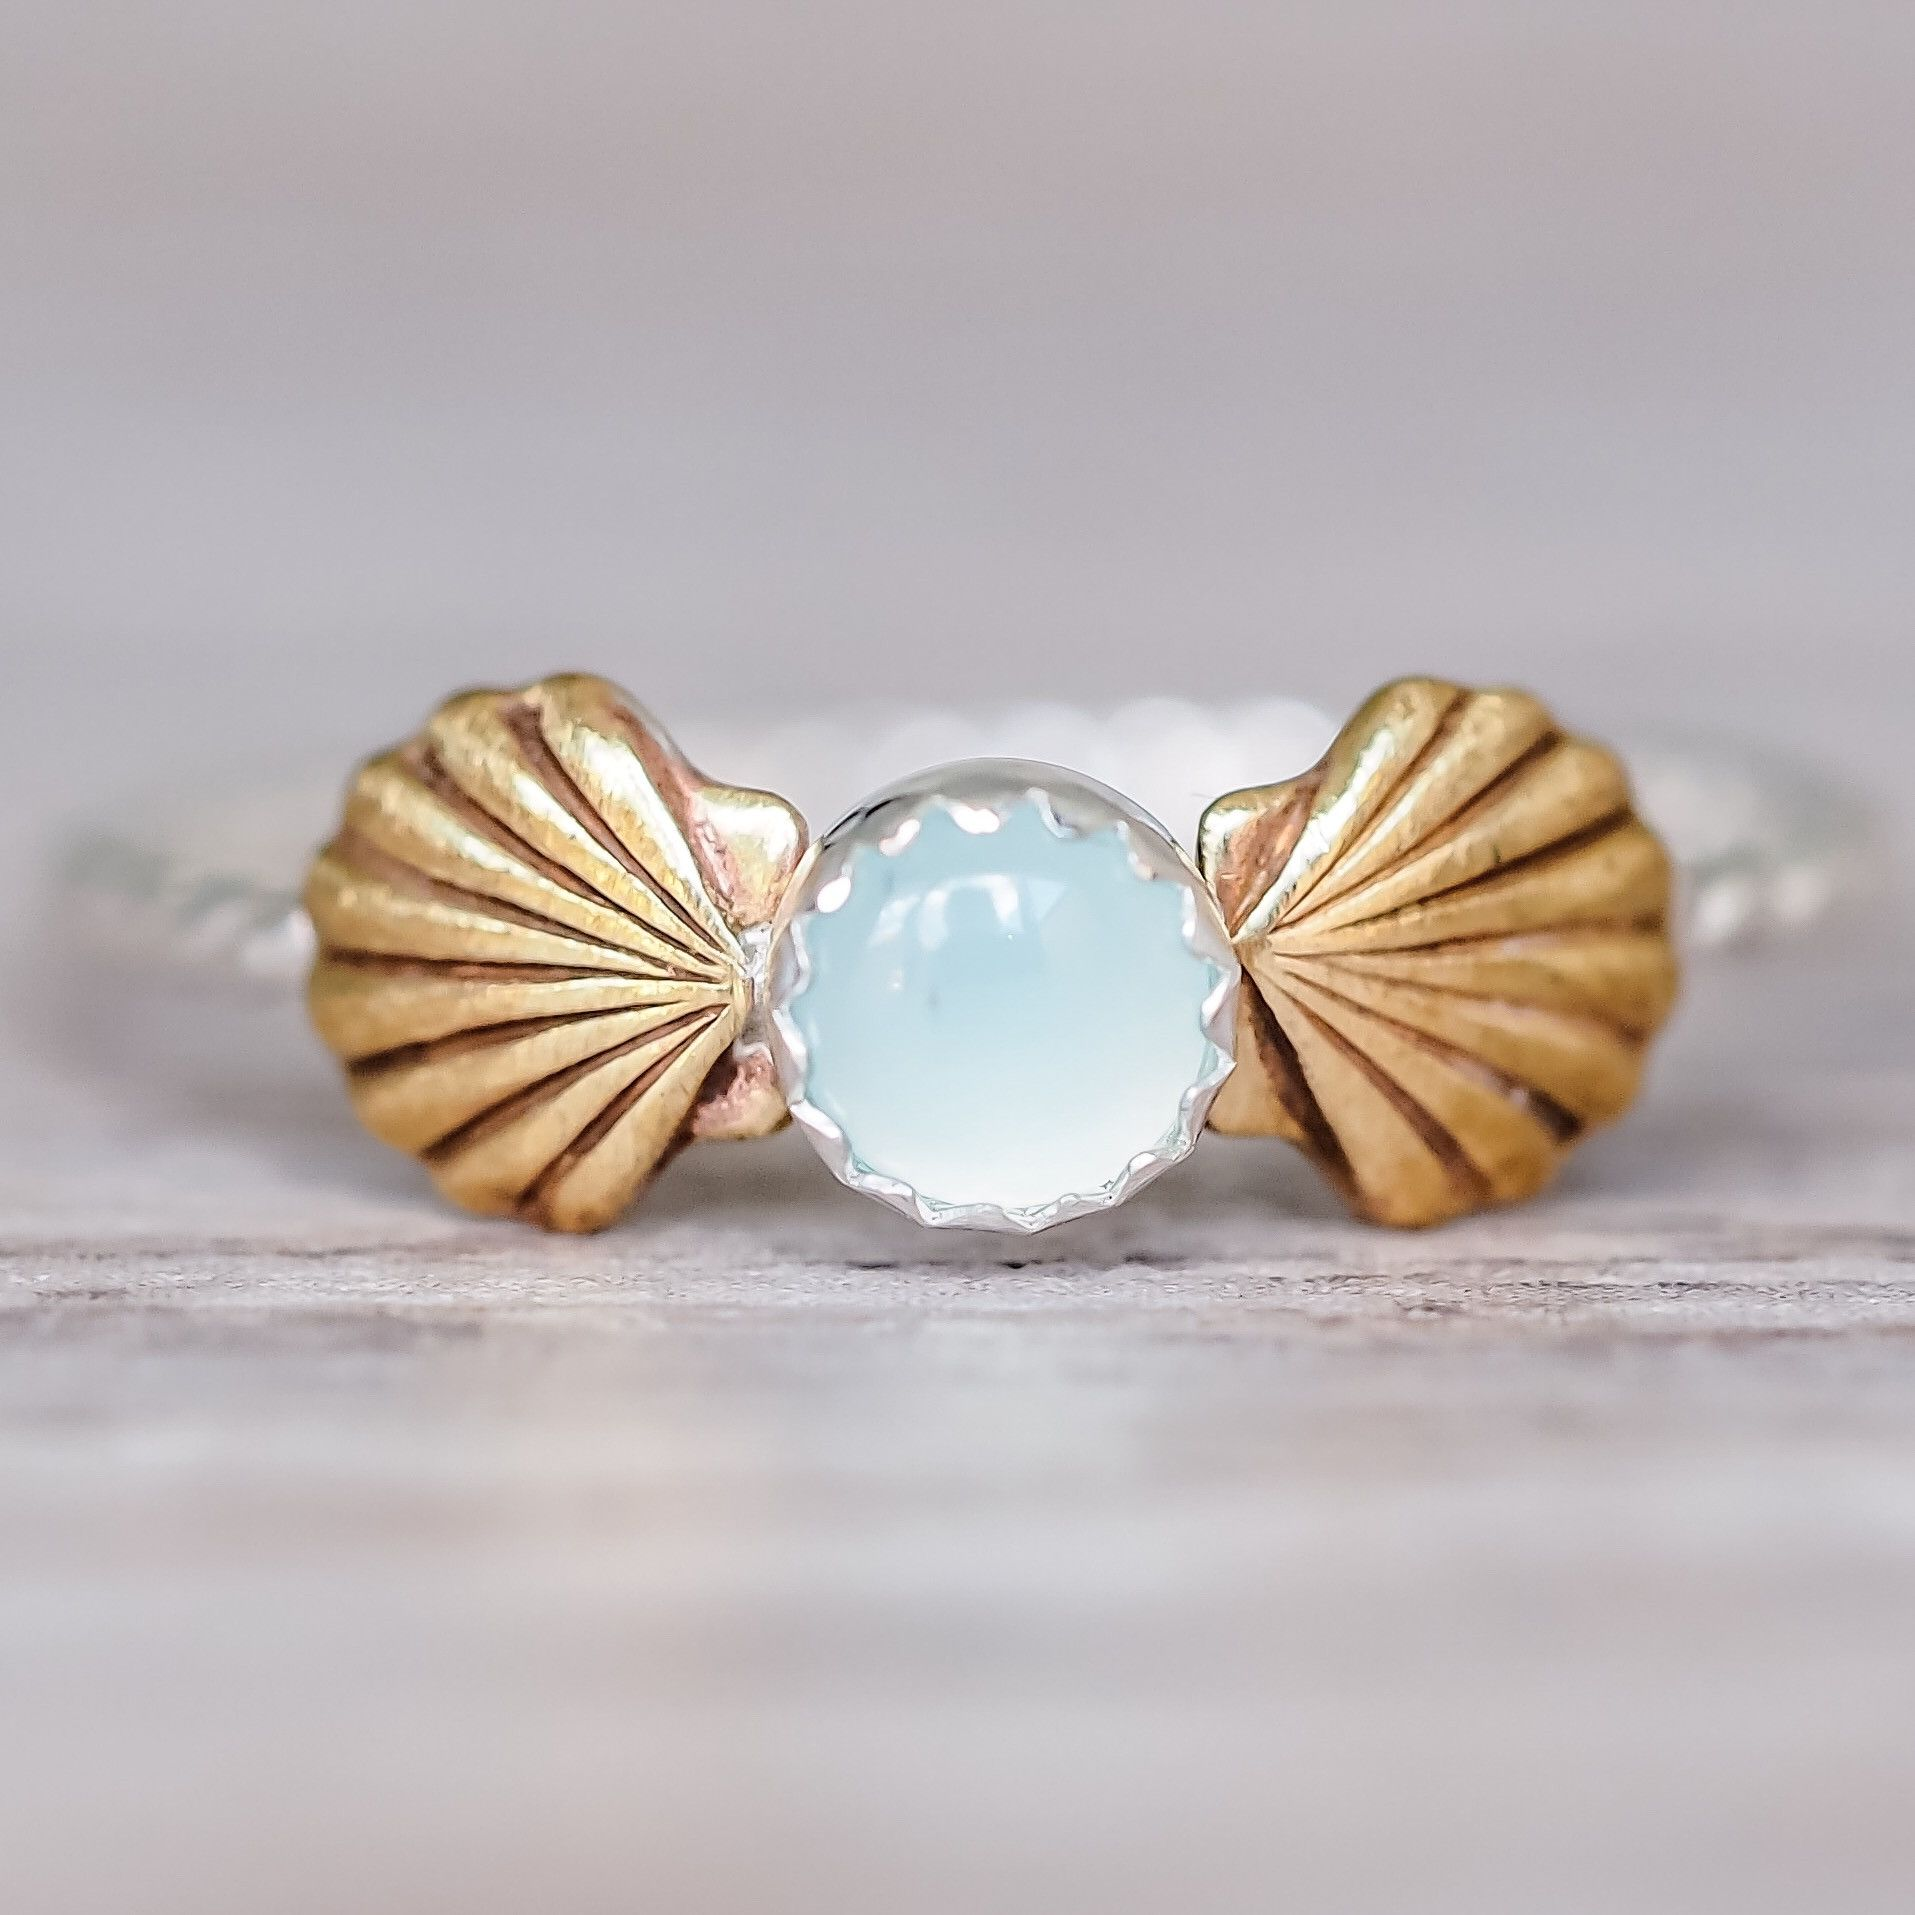 Mermaid Sea Shells and Aqua Chalcedony | Bohemian Gypsy Jewels | Indie and Harper